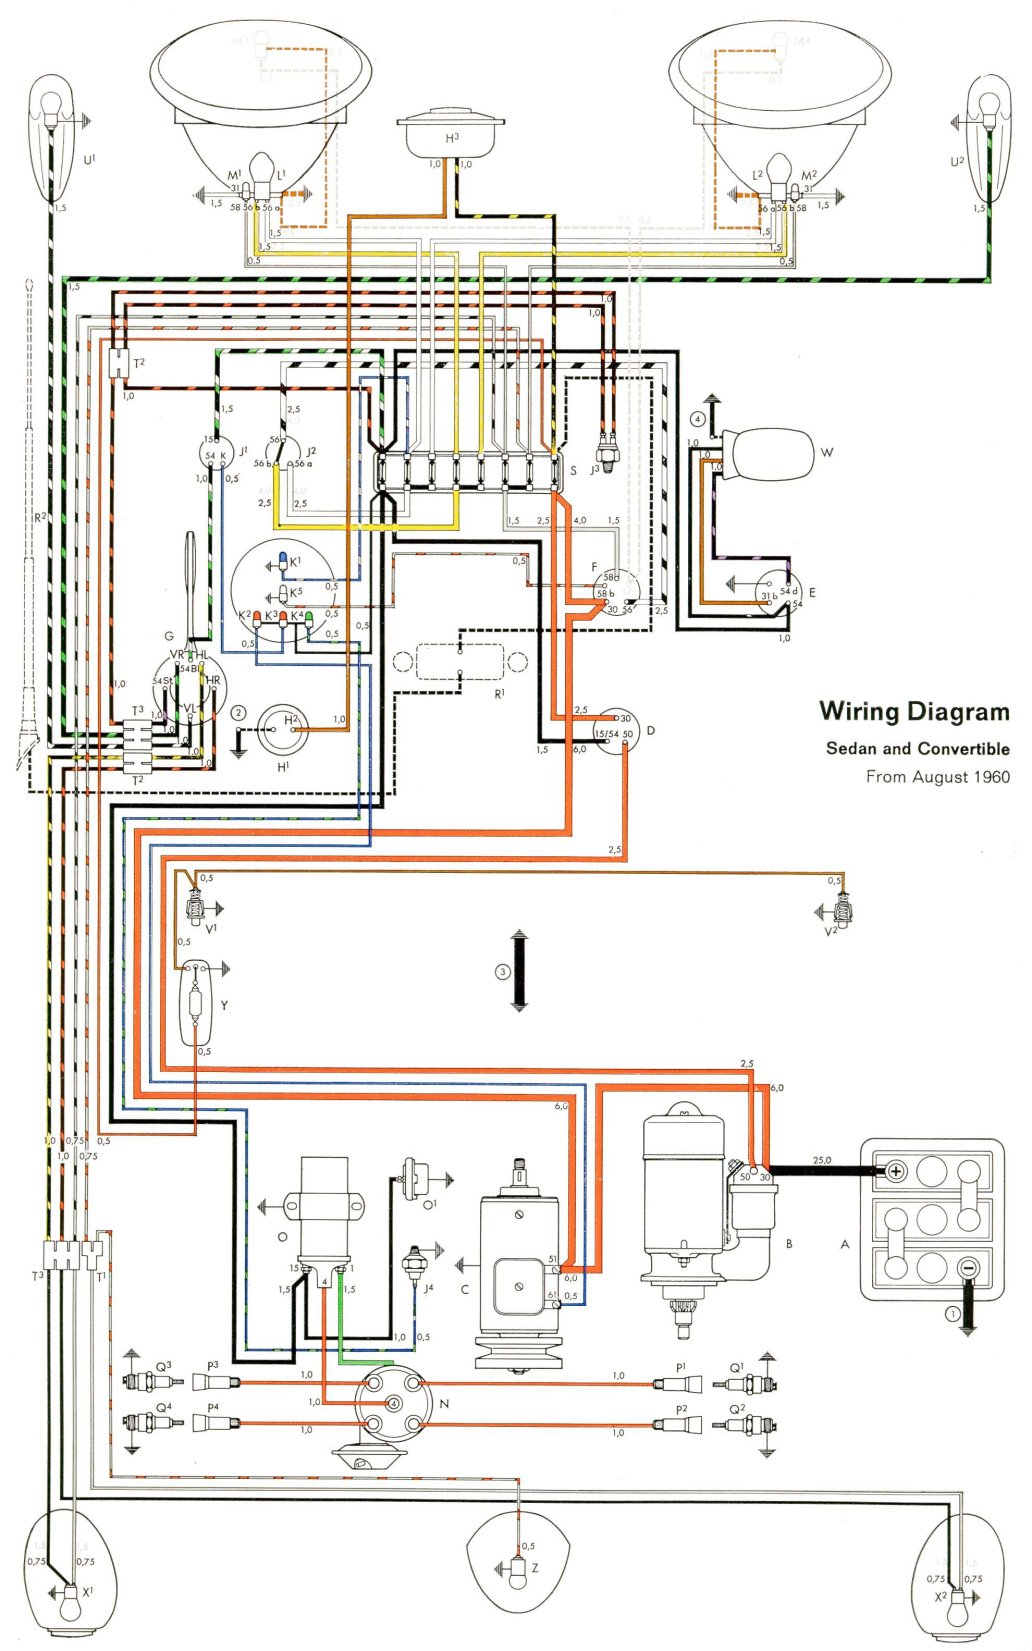 bug_61 1961 beetle wiring diagram thegoldenbug com 1973 vw wiring diagram at nearapp.co